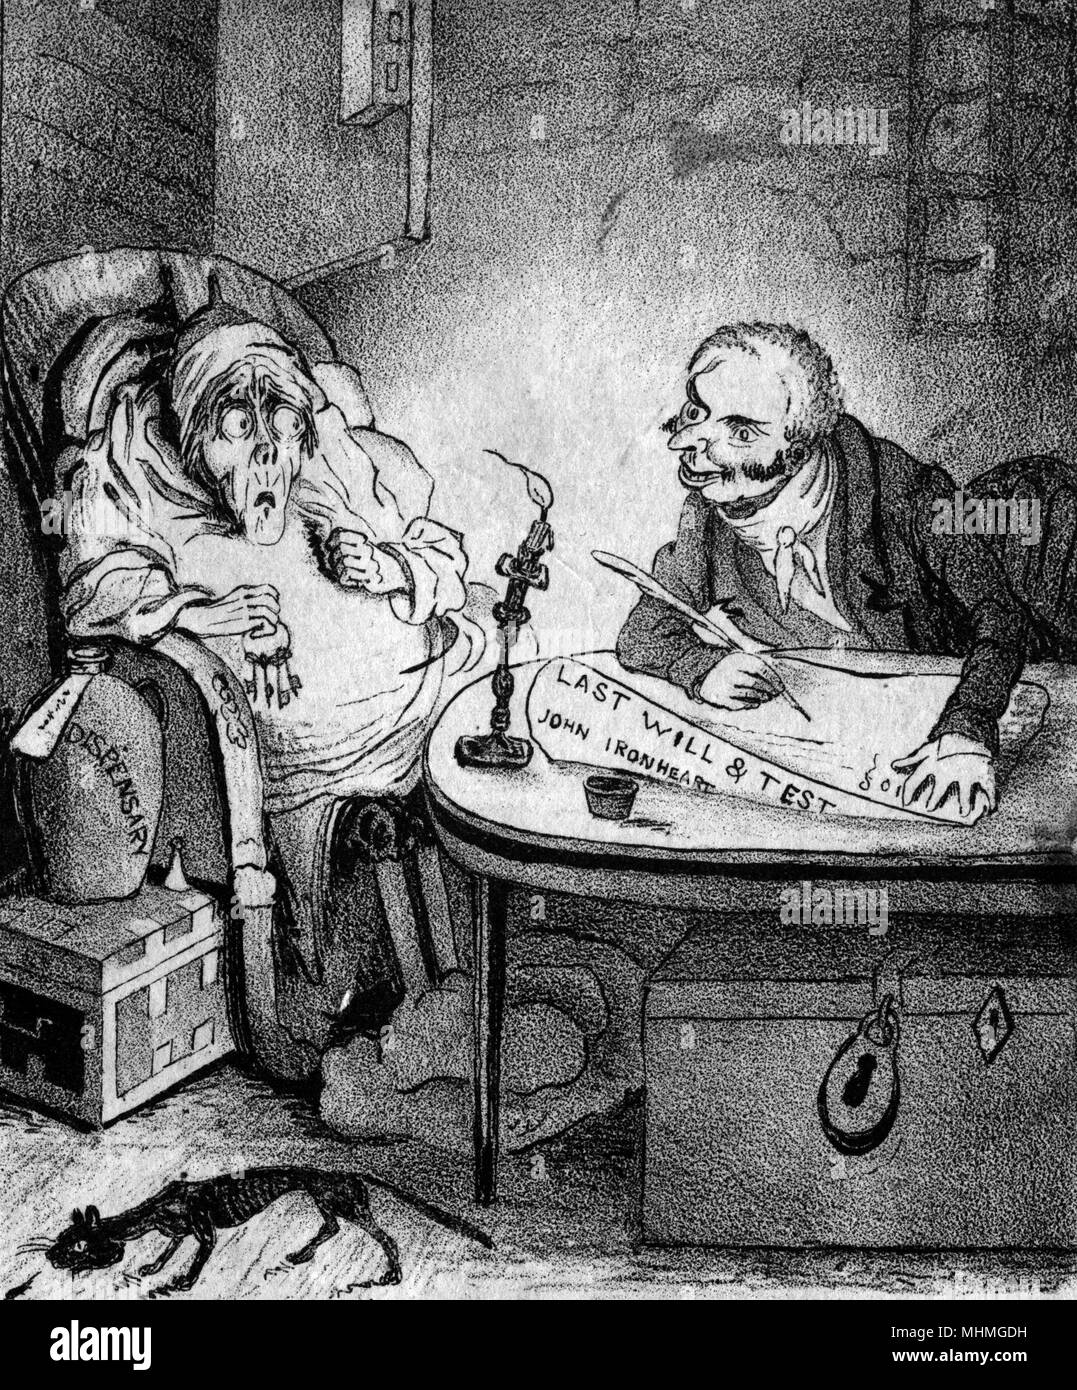 """A solicitor writing a will for a sick client says """"Leave all the rest to me"""". The client, who appears to be a miser (called John Ironheart), is looking horrified.      Date: circa 1830 - Stock Image"""